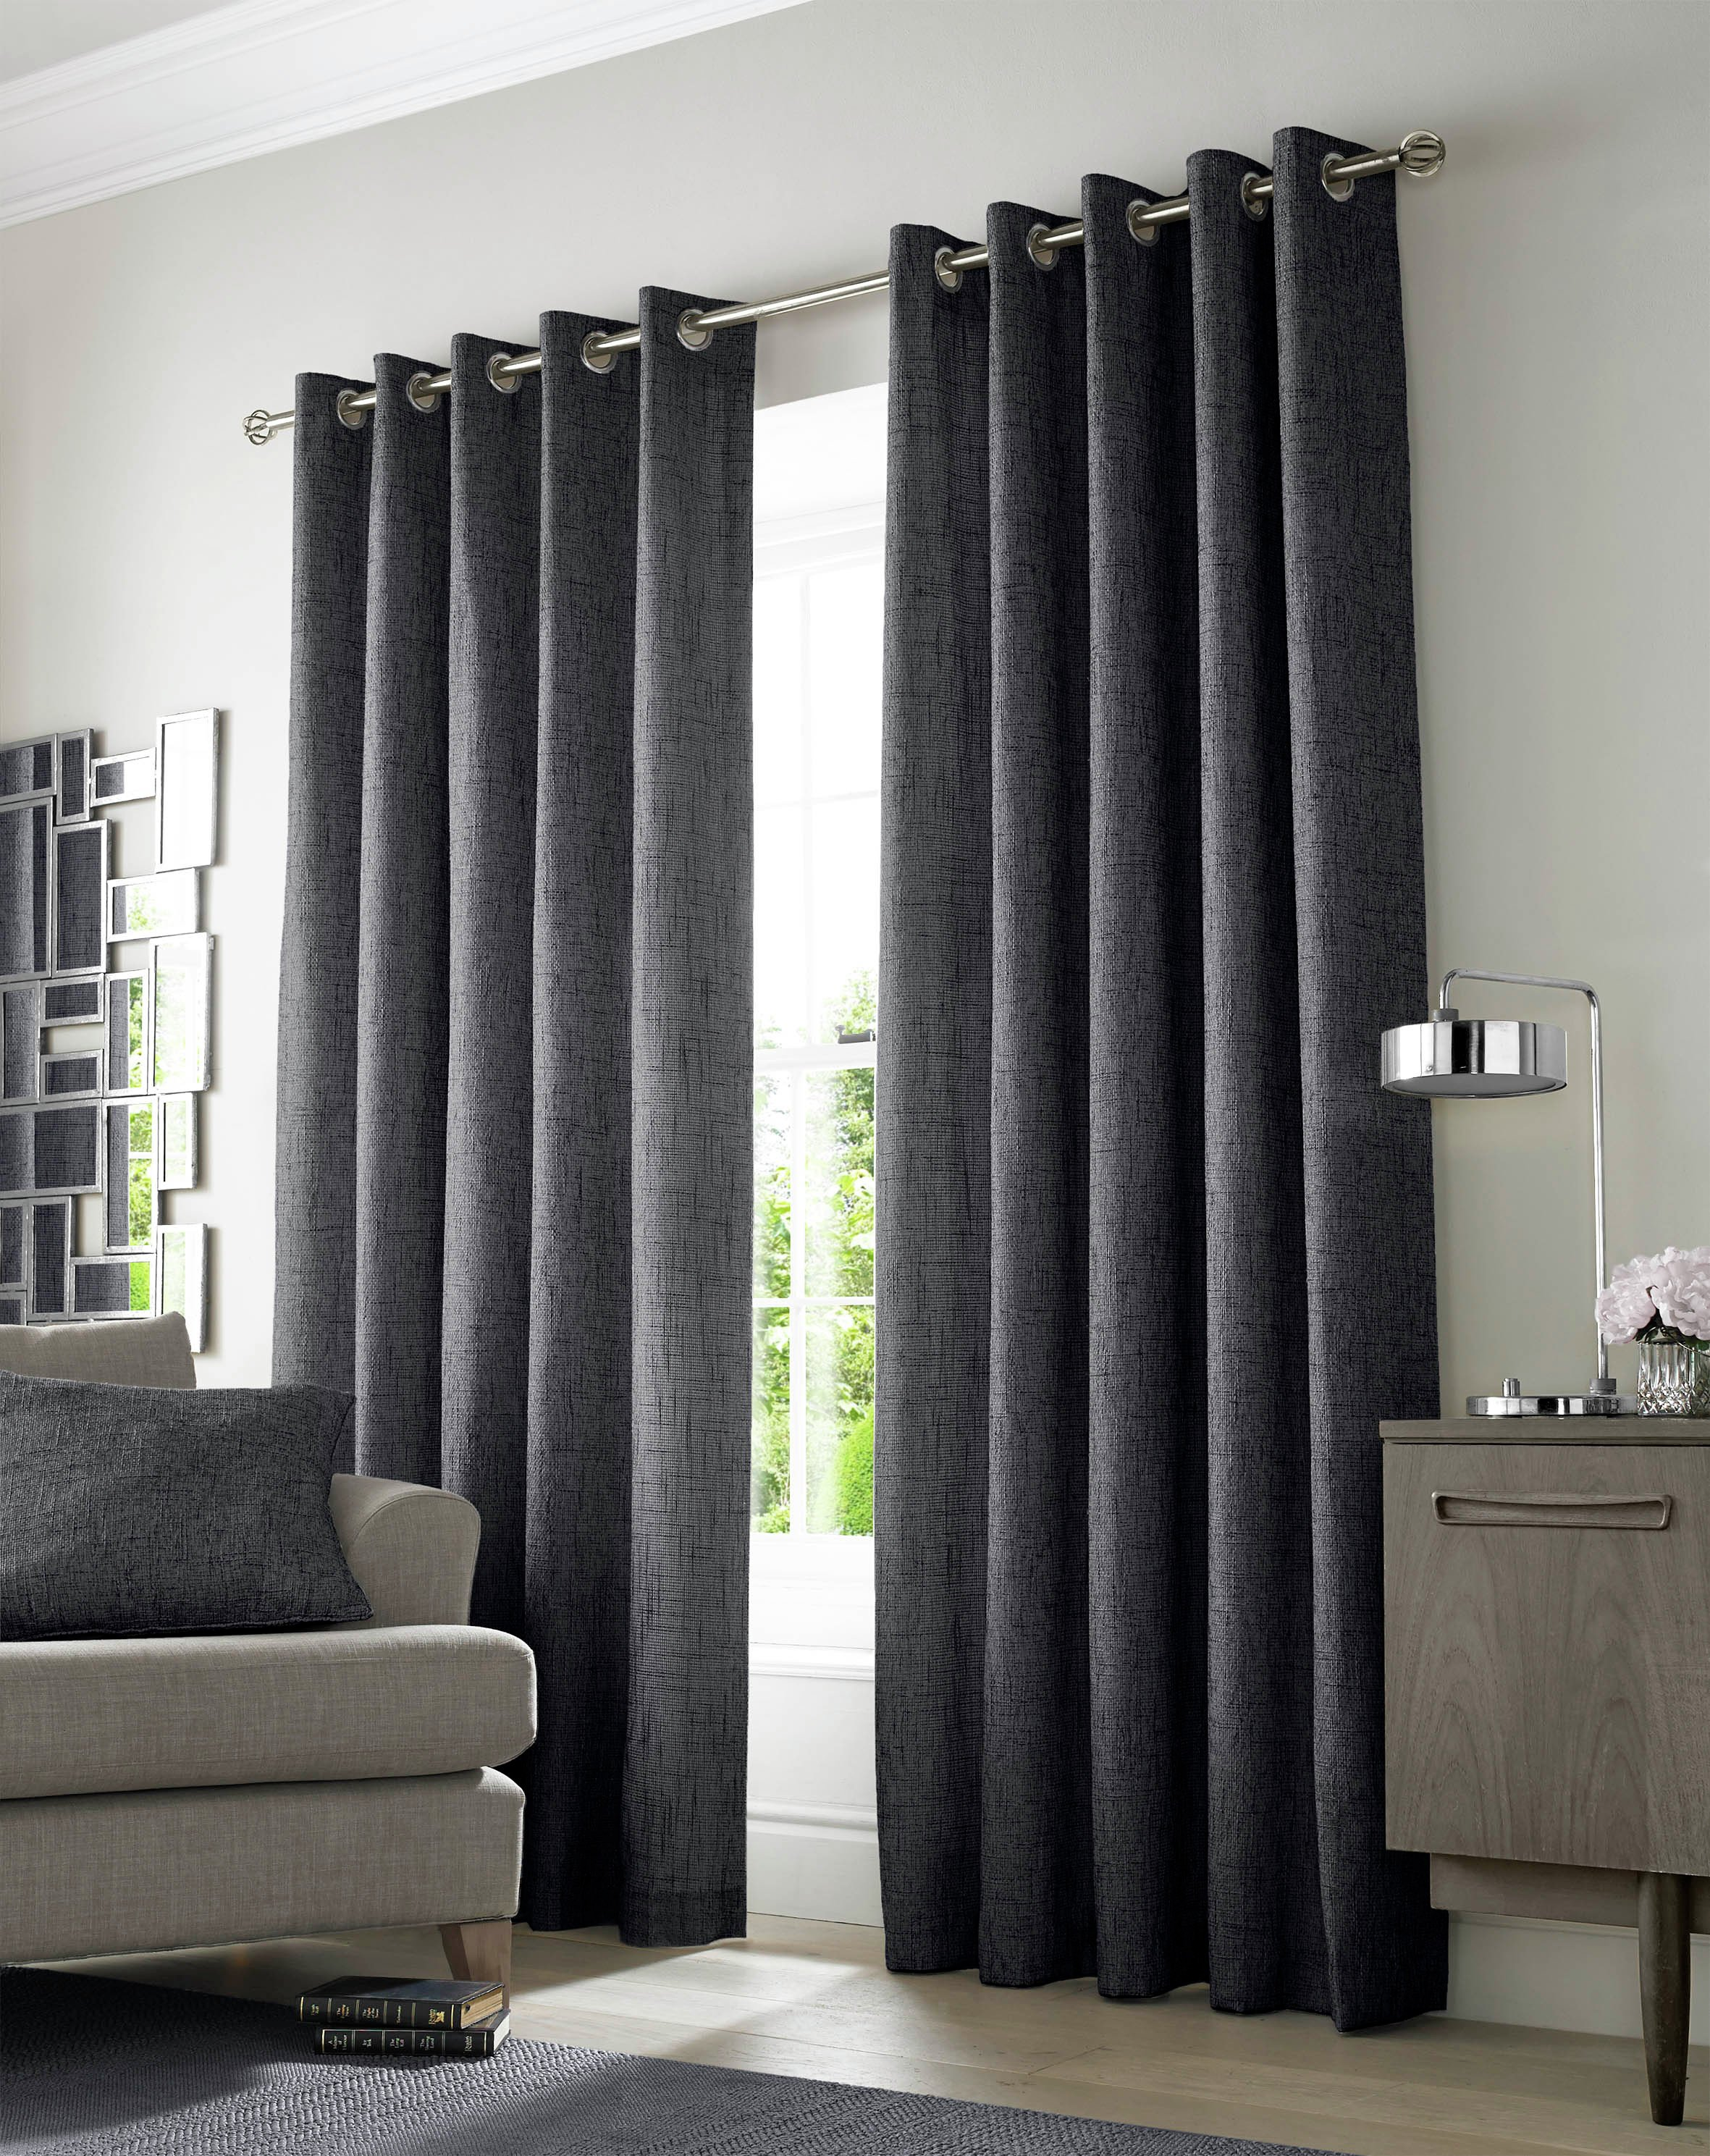 Image of Academy Eyelet Curtains - 165x137cm - Charcoal.